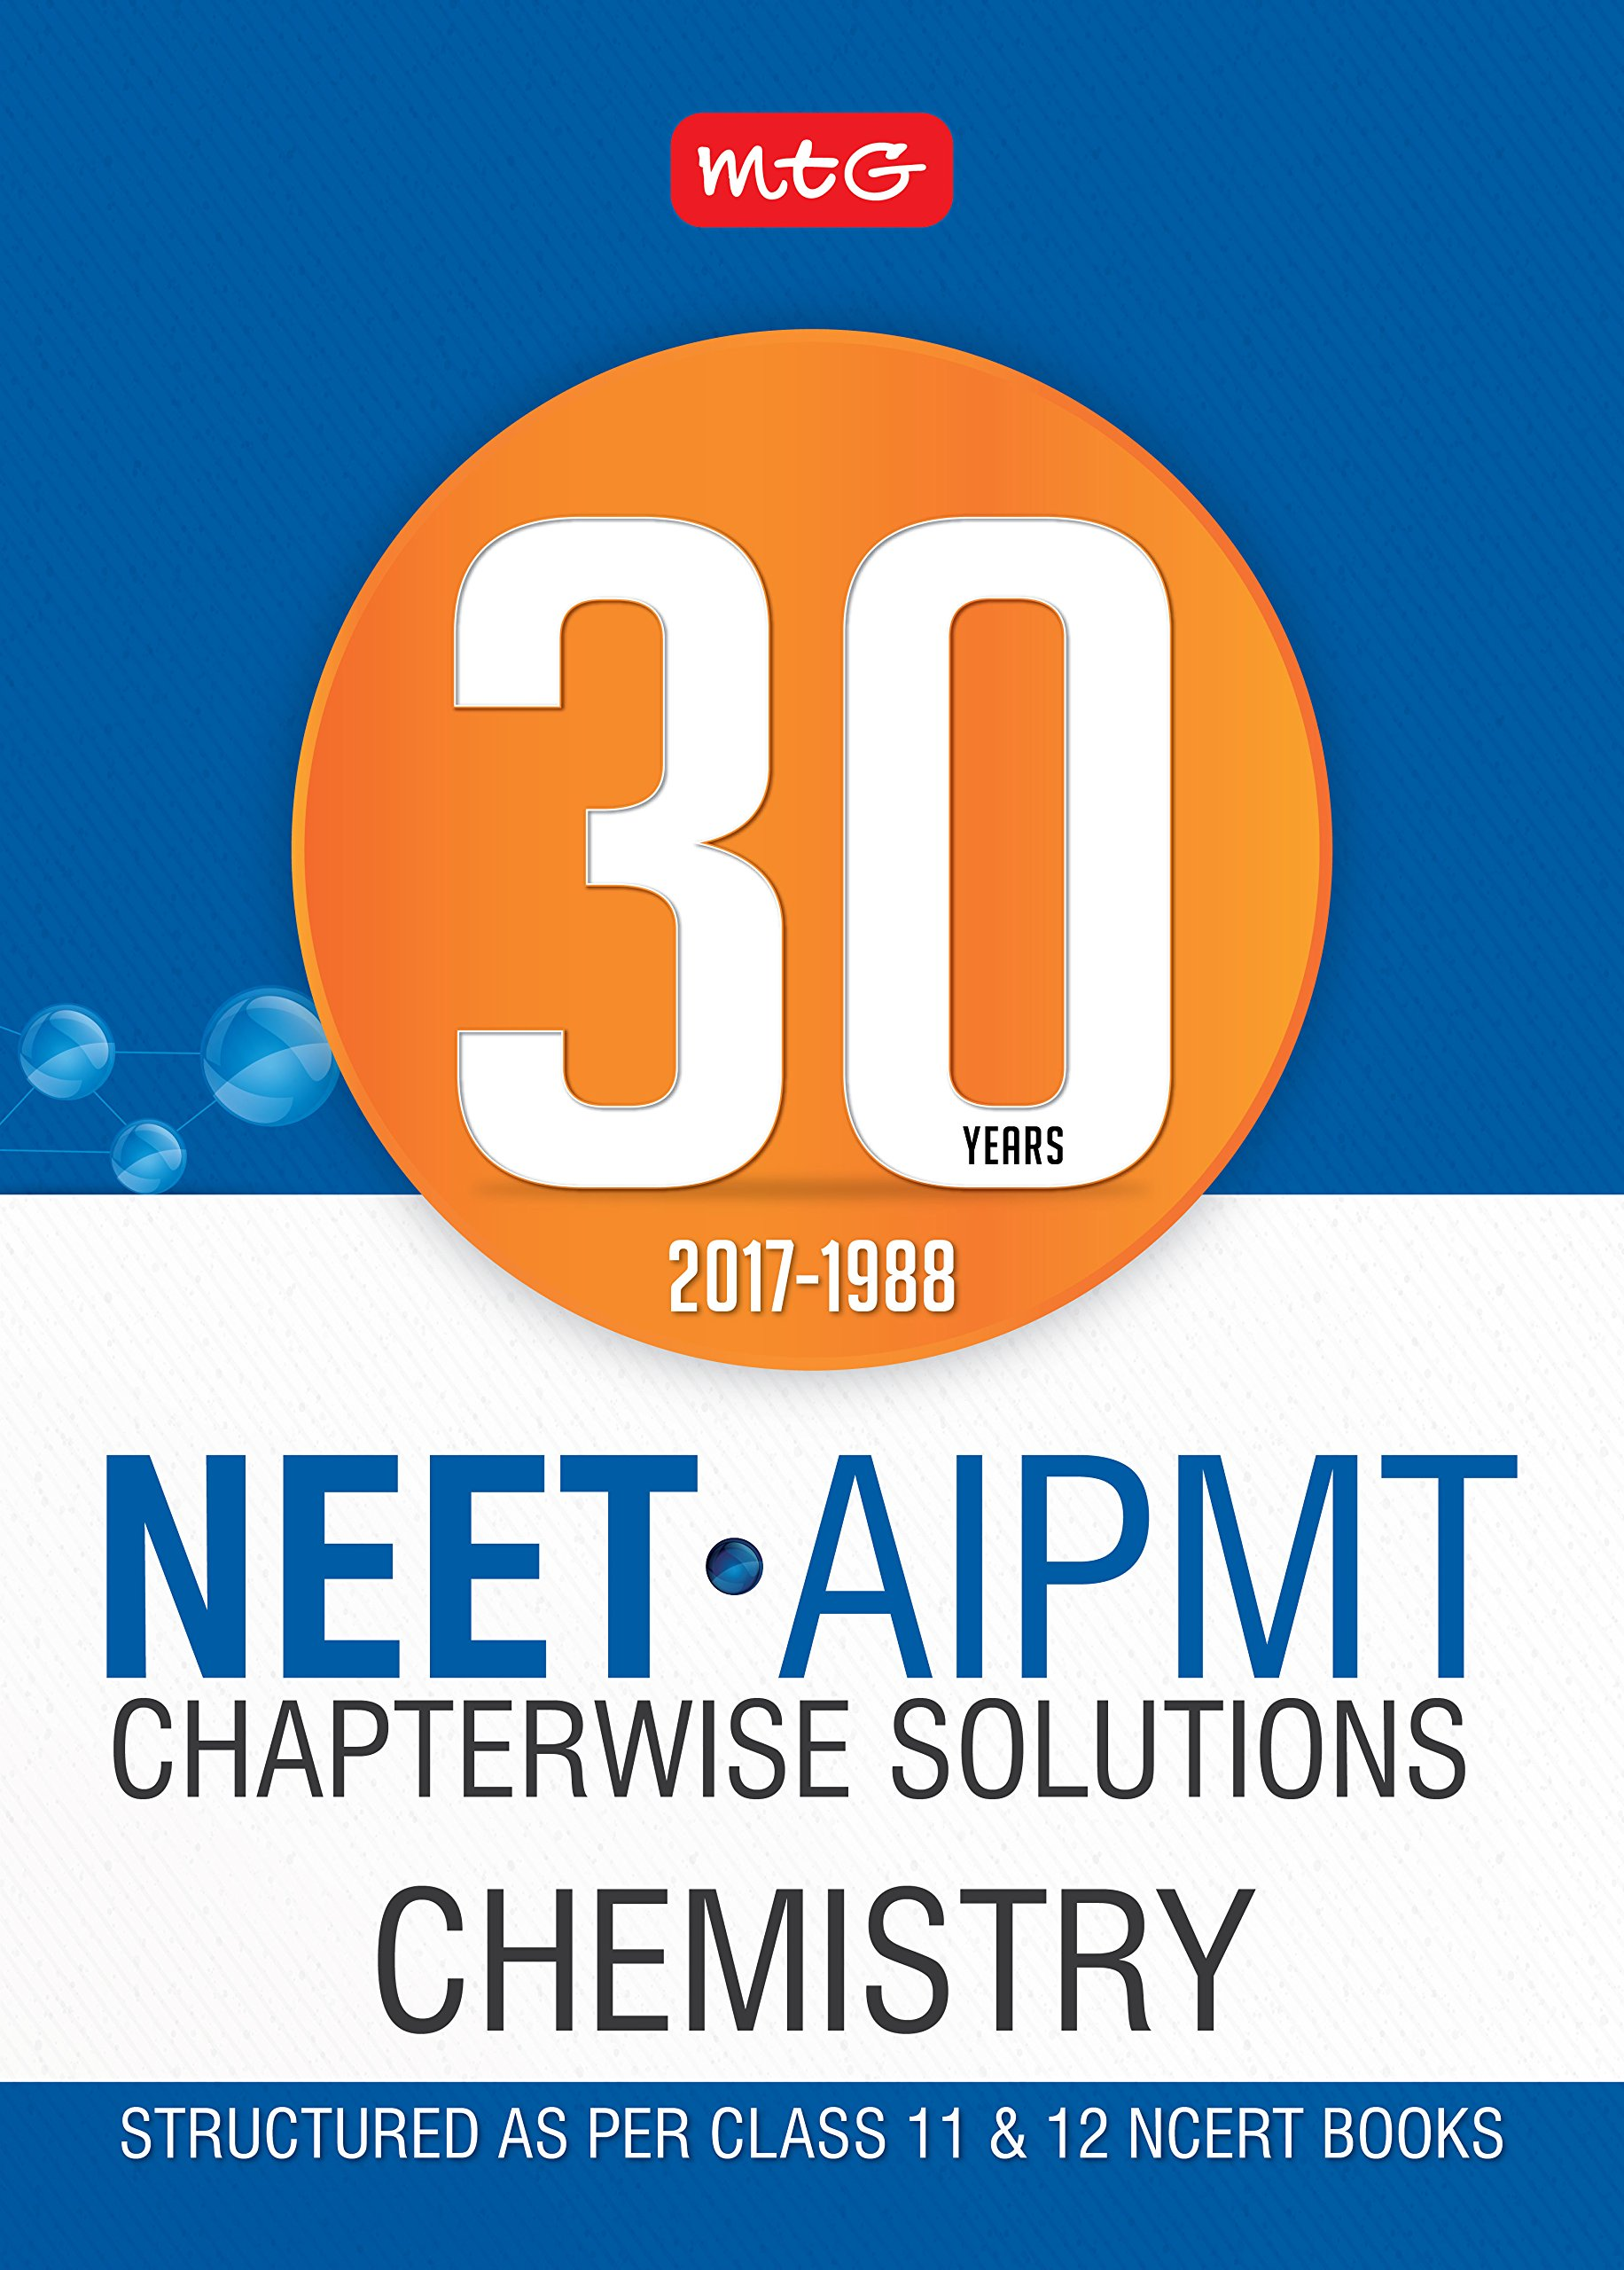 30 Years NEET-AIPMT Chapterwise Solutions - Chemistry PDF